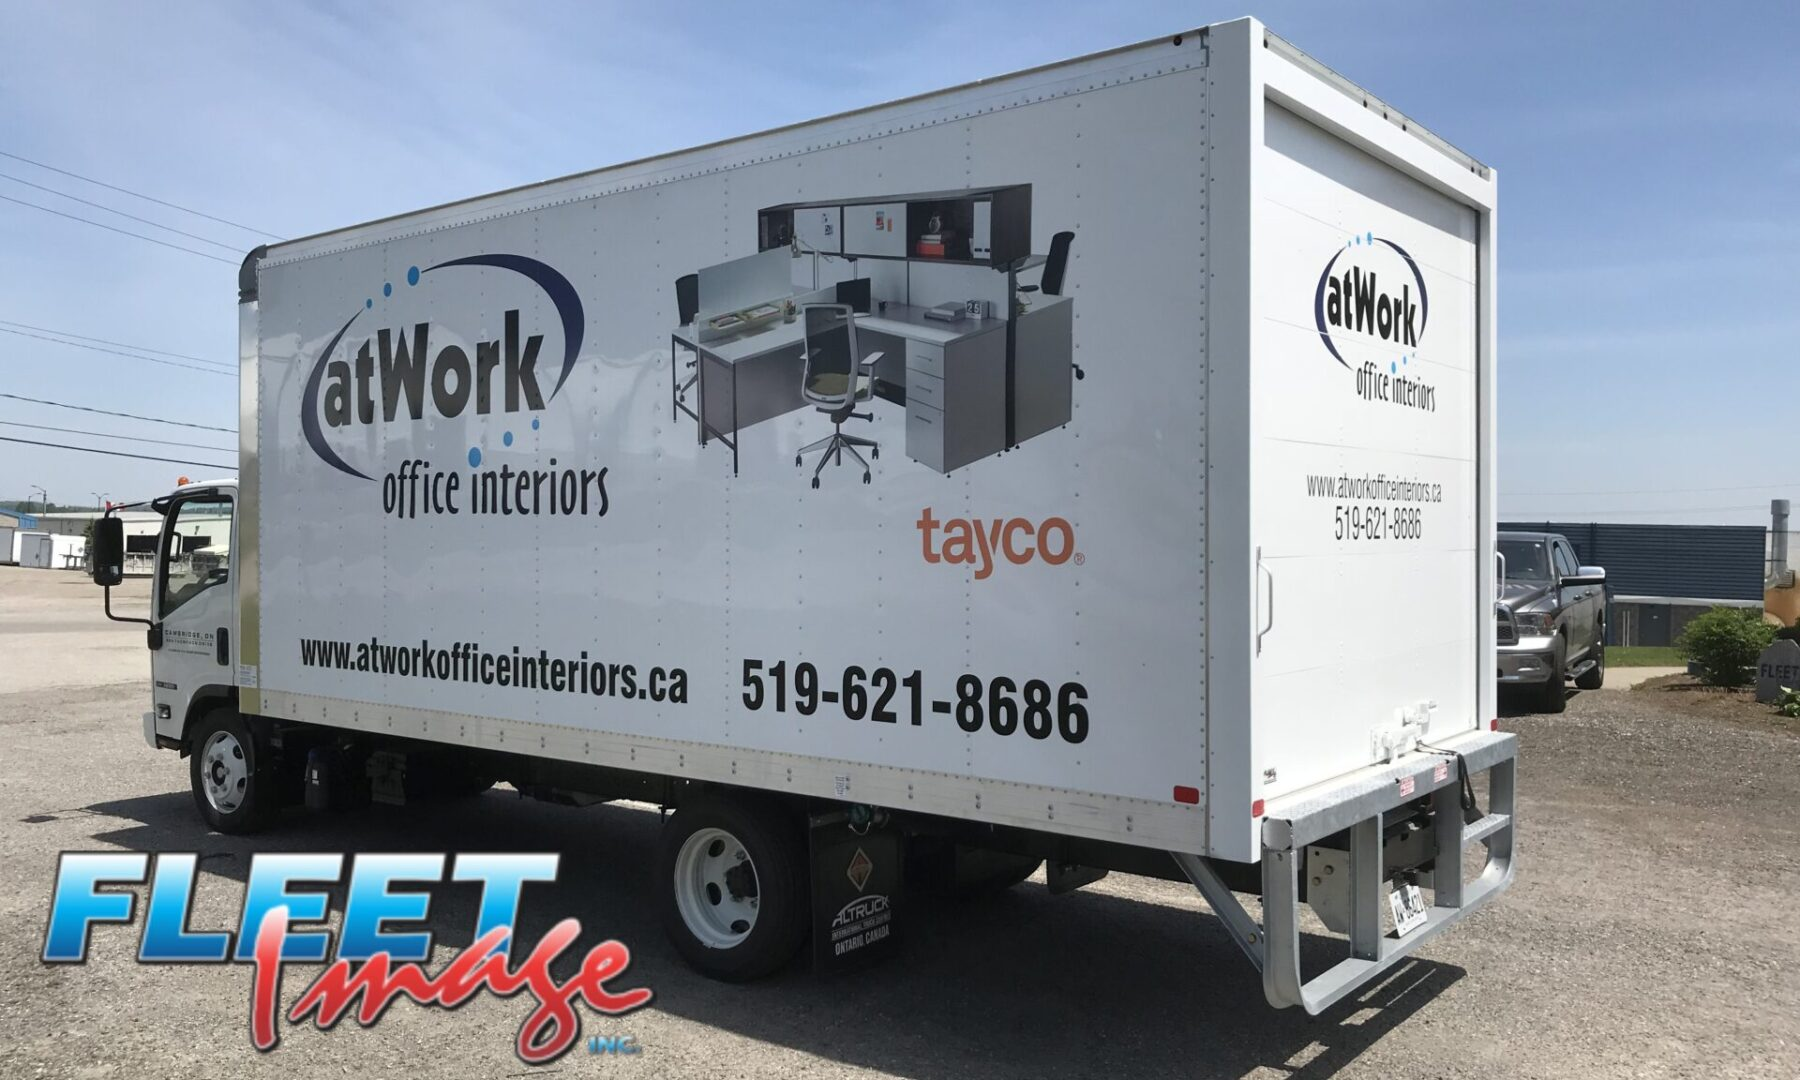 atwork office interiors decal sticker on a truck